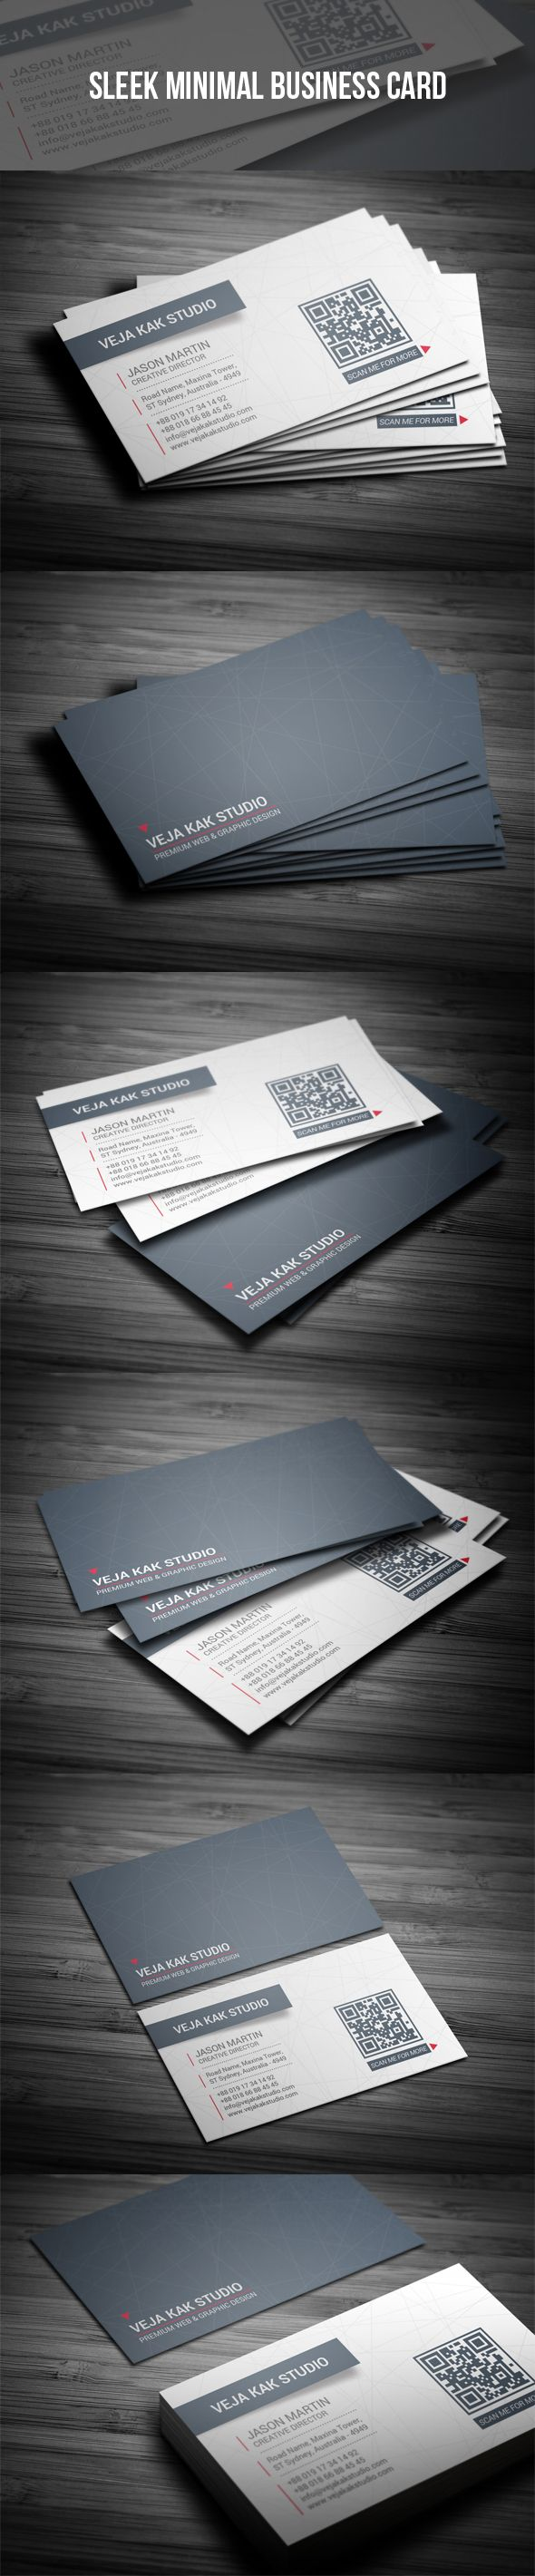 Click Business Cards Sydney Images - Card Design And Card Template